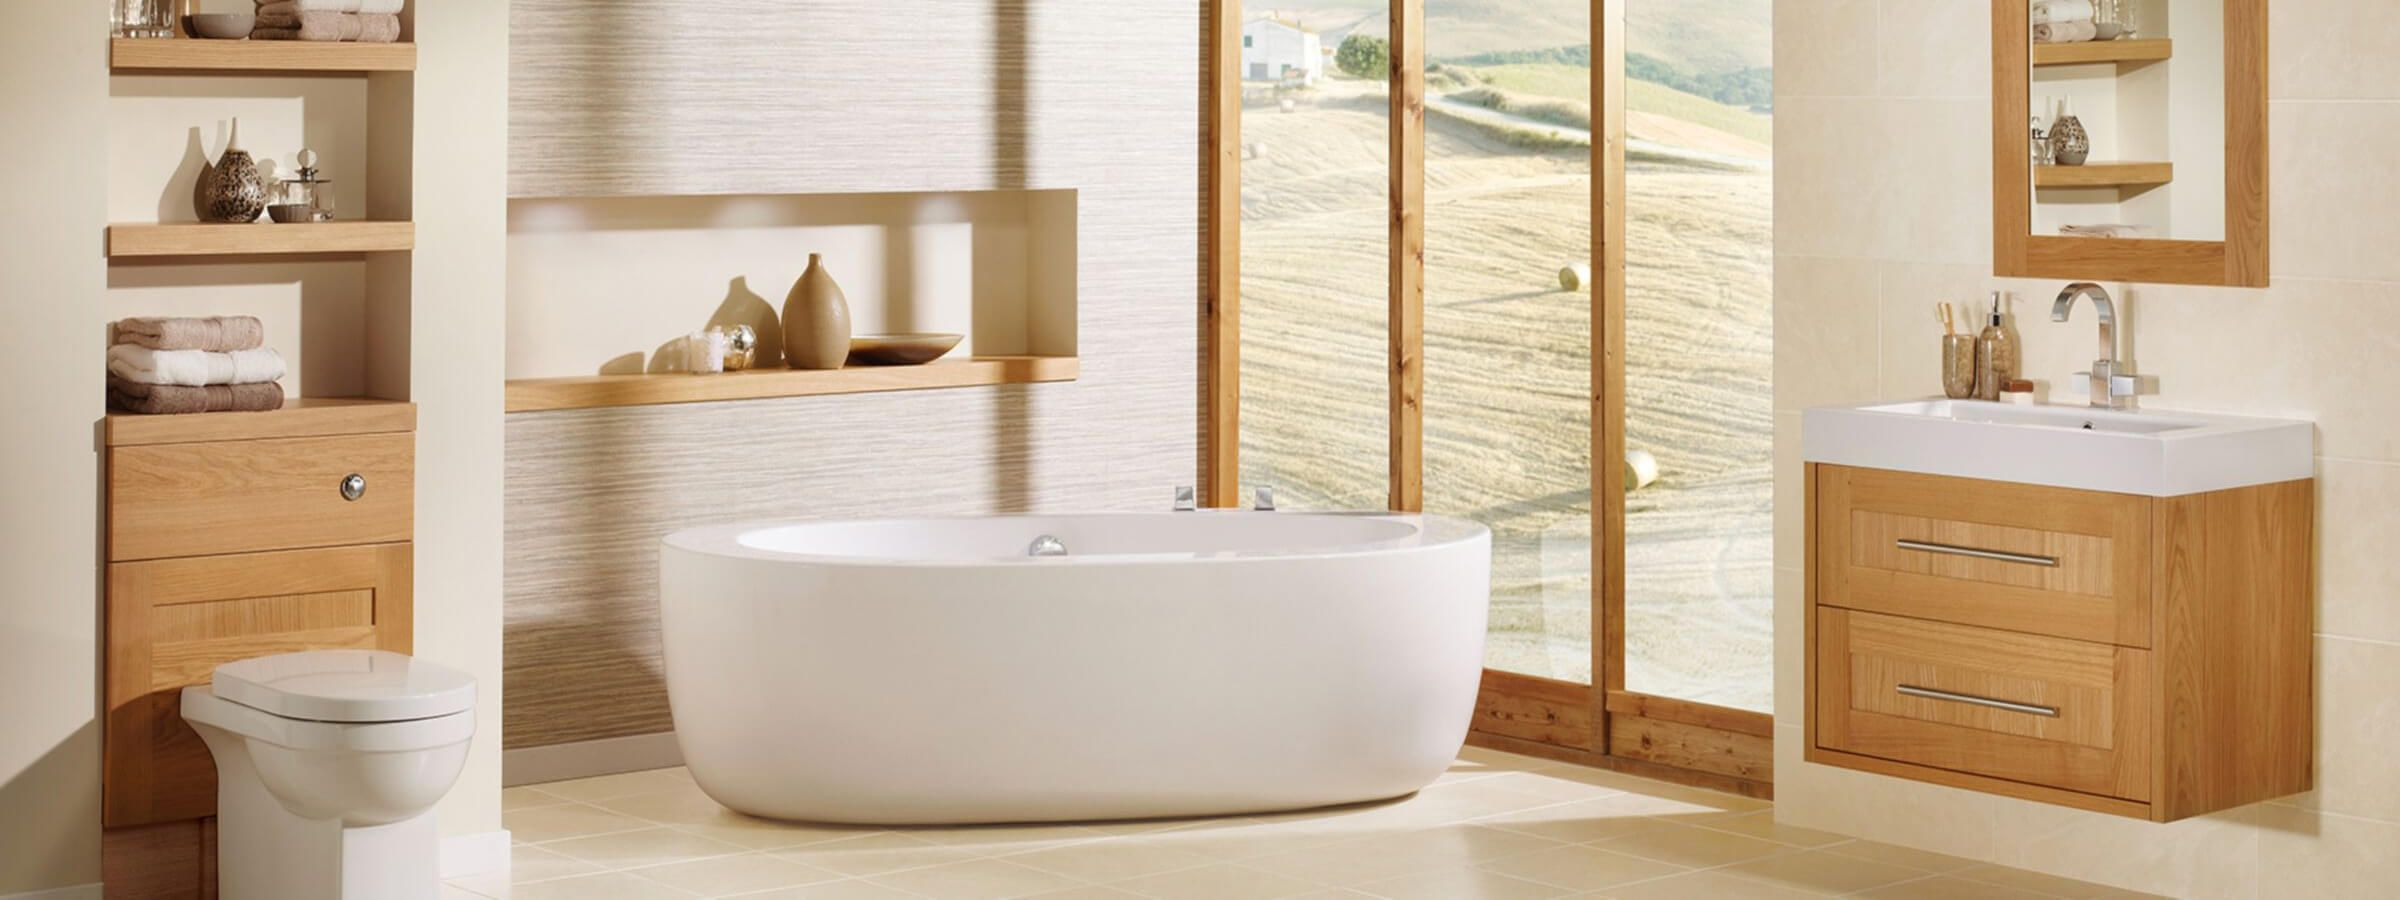 John Lewis fitted bathroom installation service